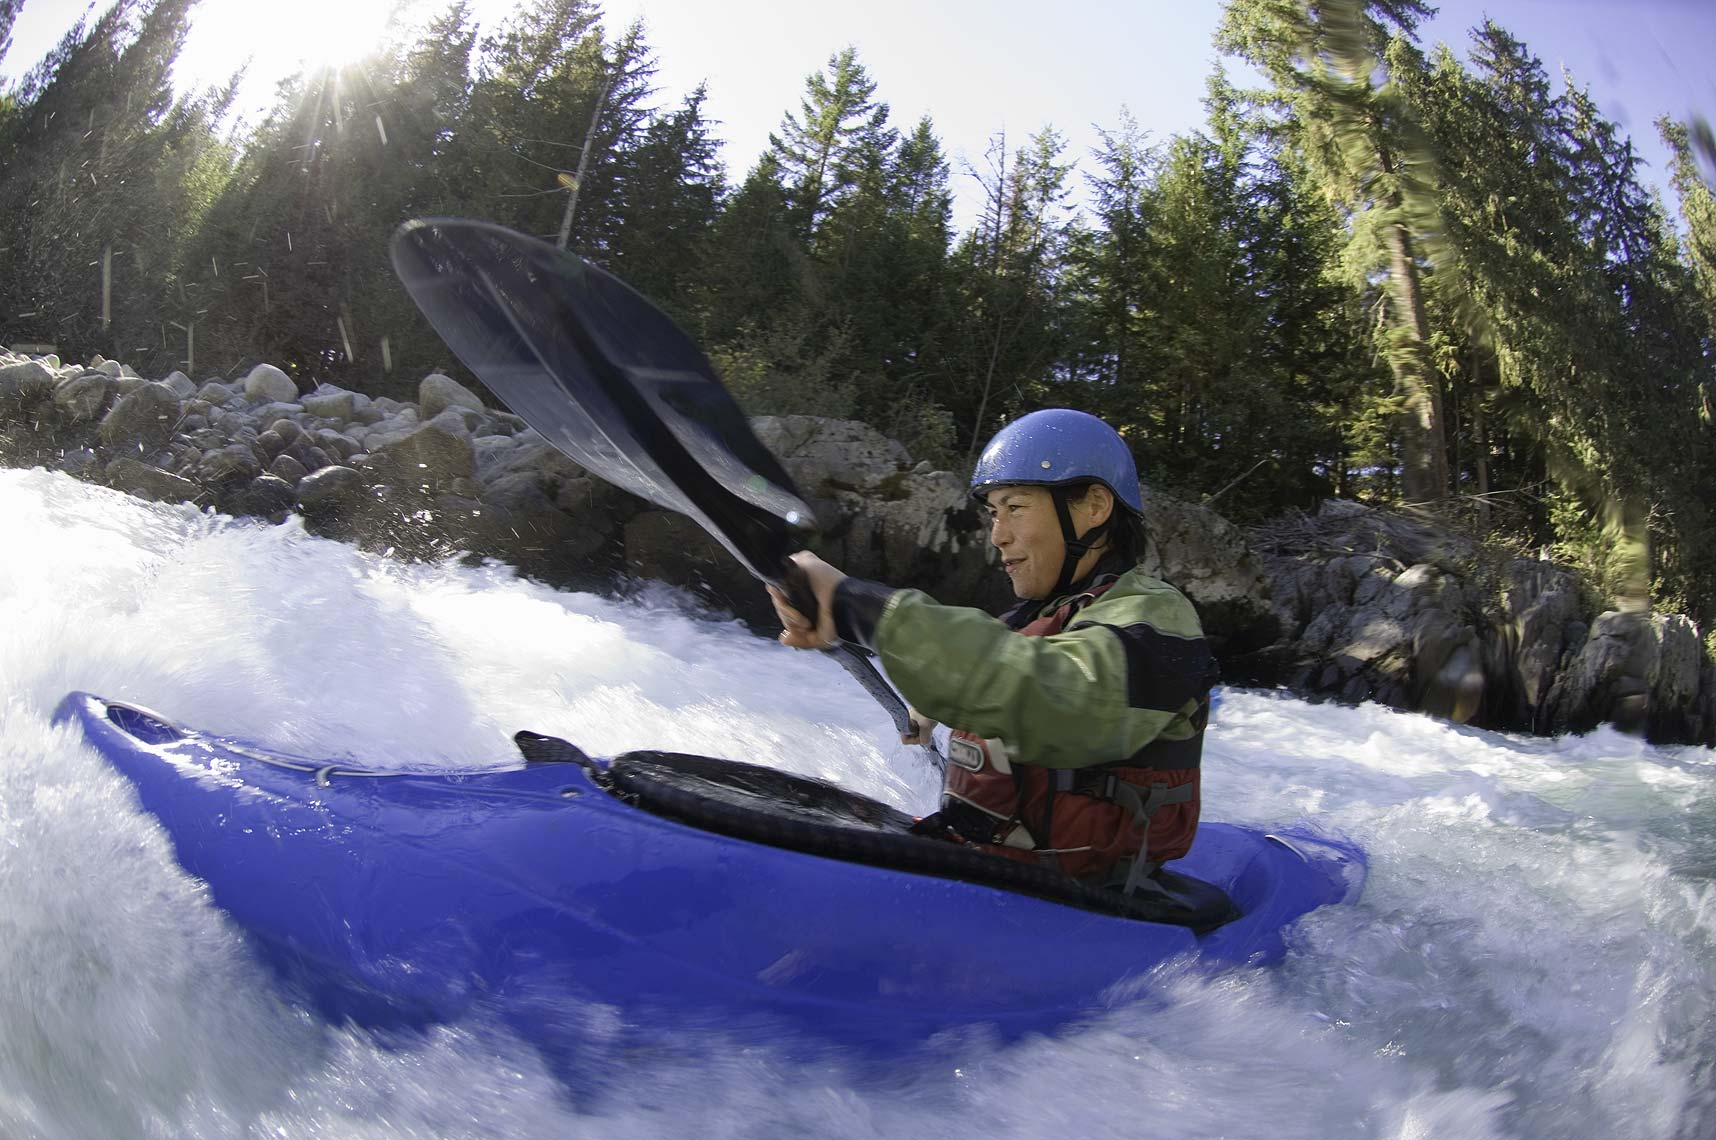 Whistler whitewater kayaker